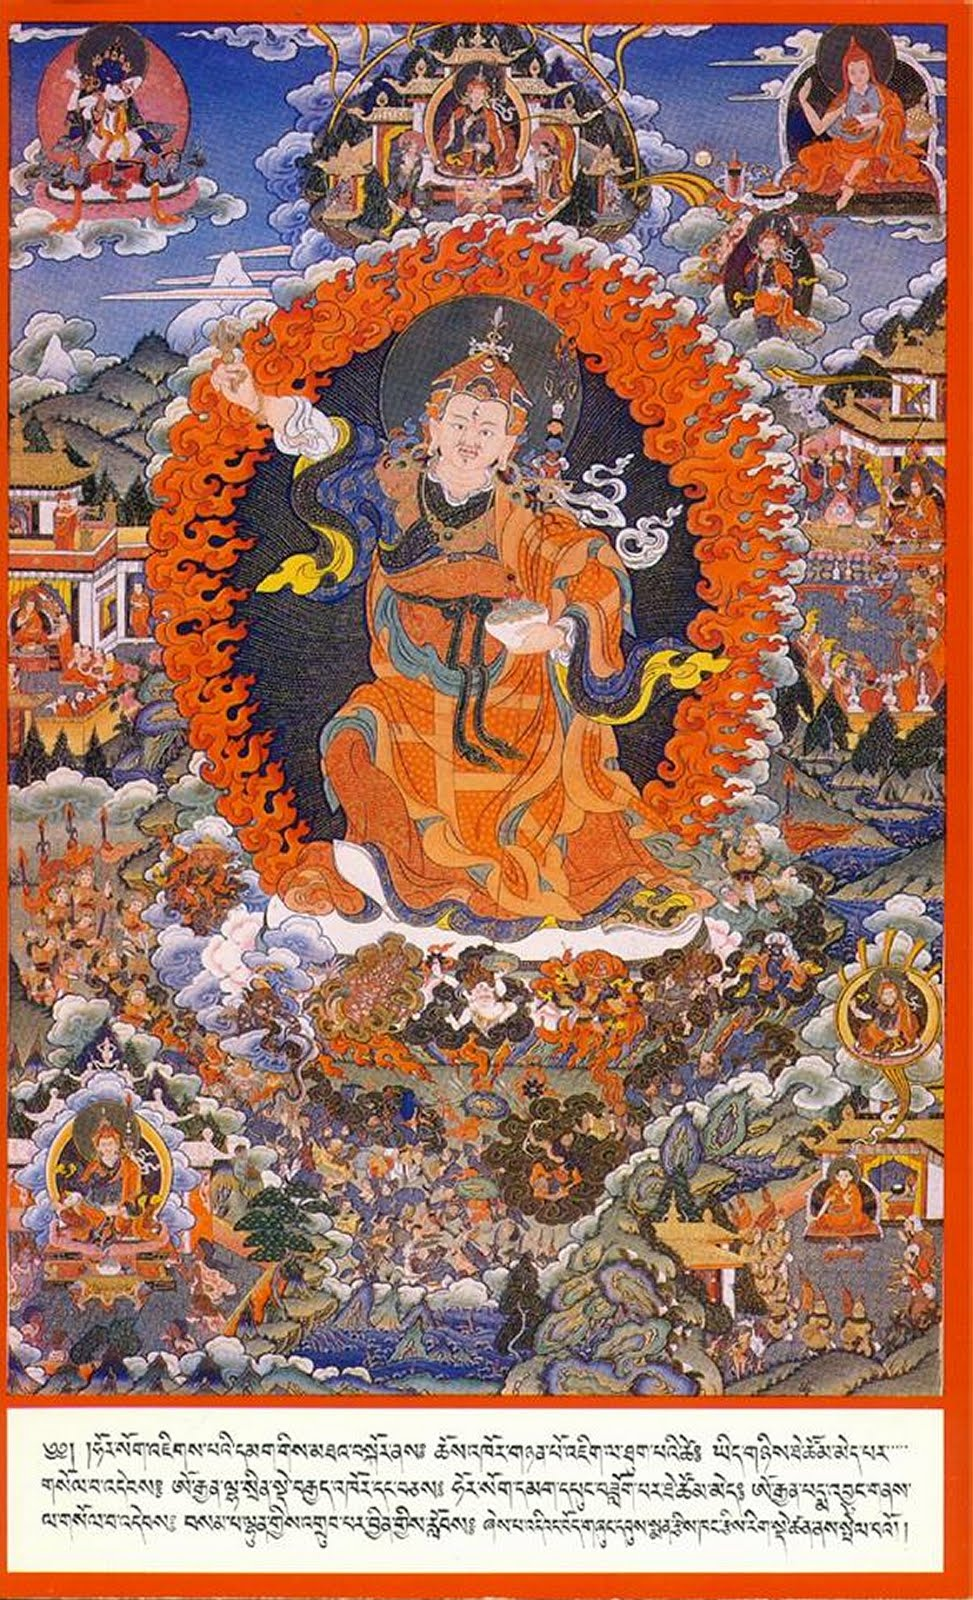 Barche Lamsel, The Prayer to Guru Rinpoche that Removes All Obstacles from the Path.